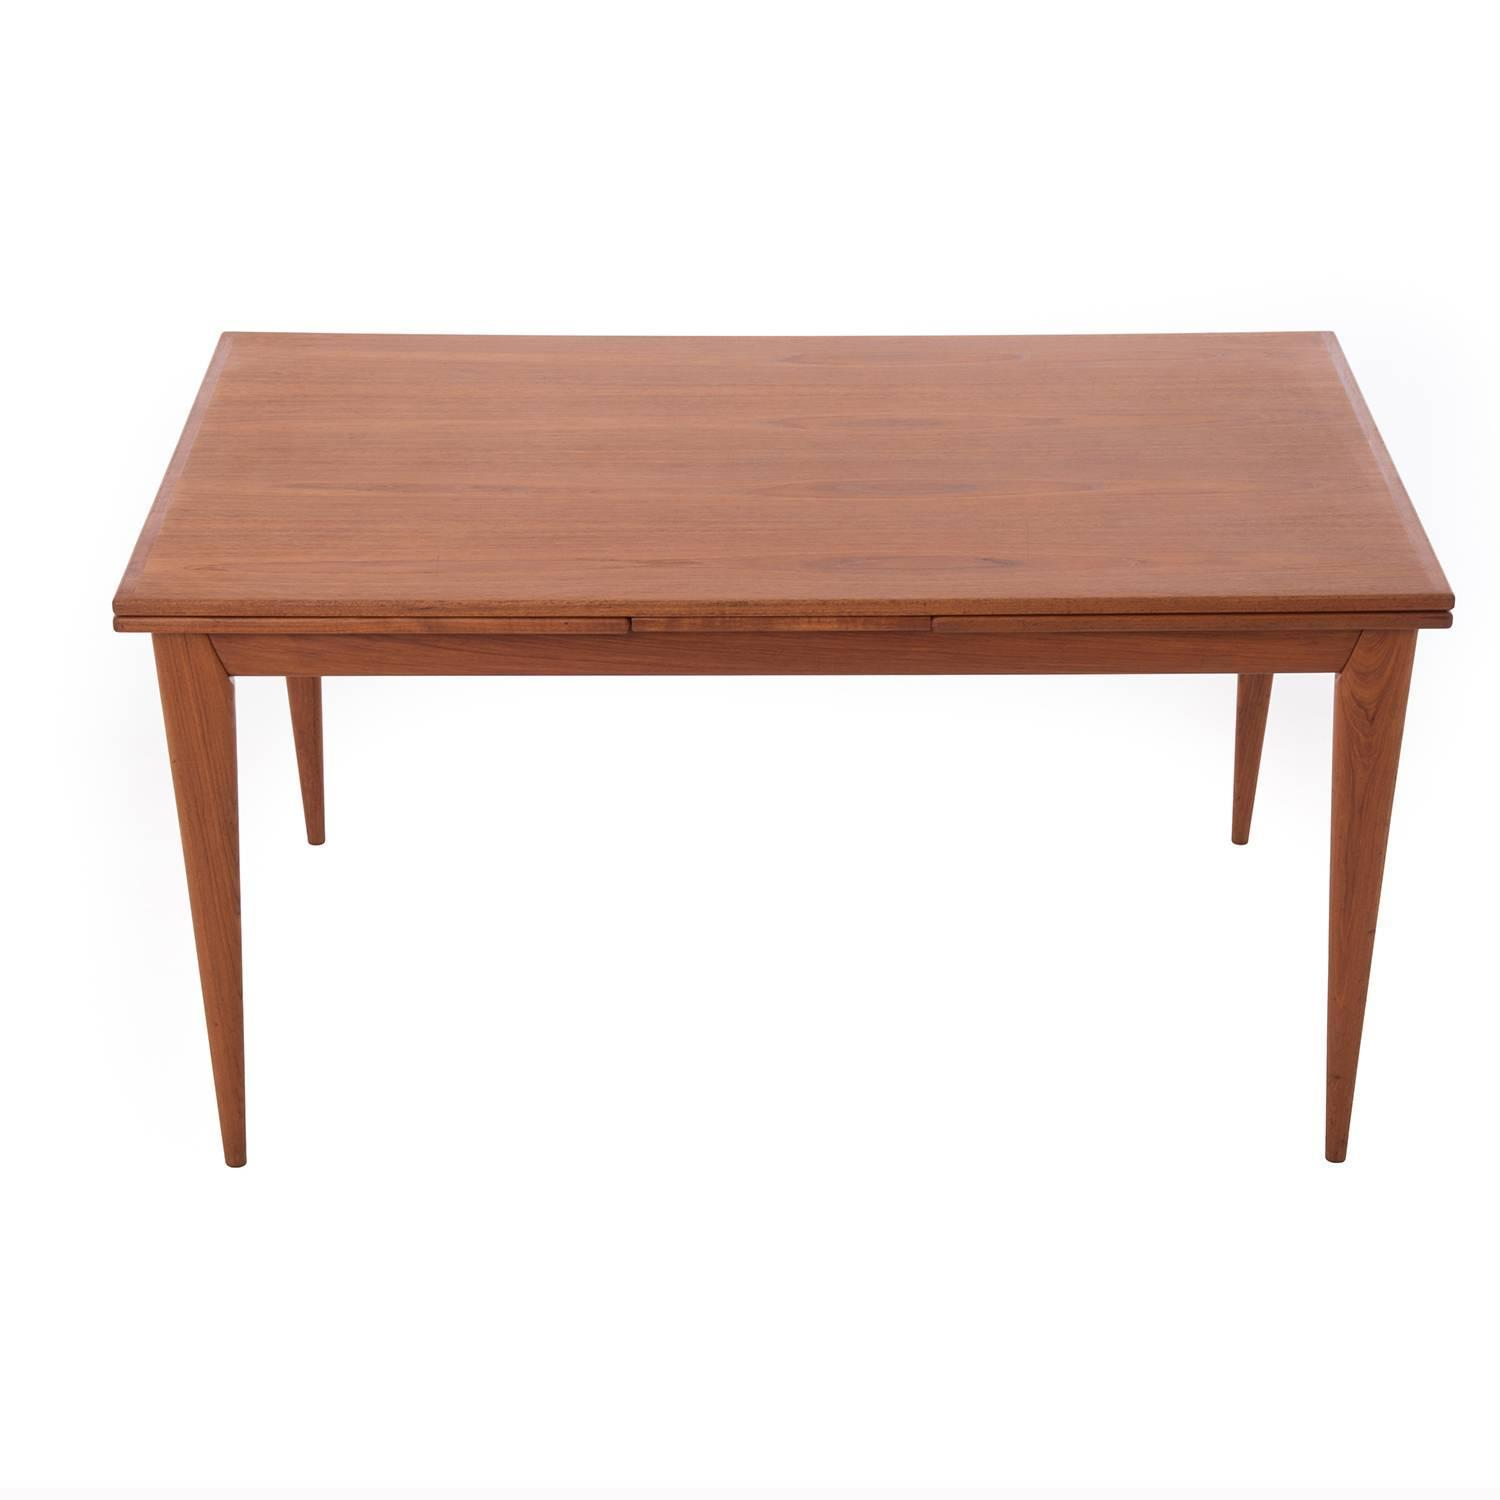 Danish modern extension dining table for sale at 1stdibs for Danish modern dining room table